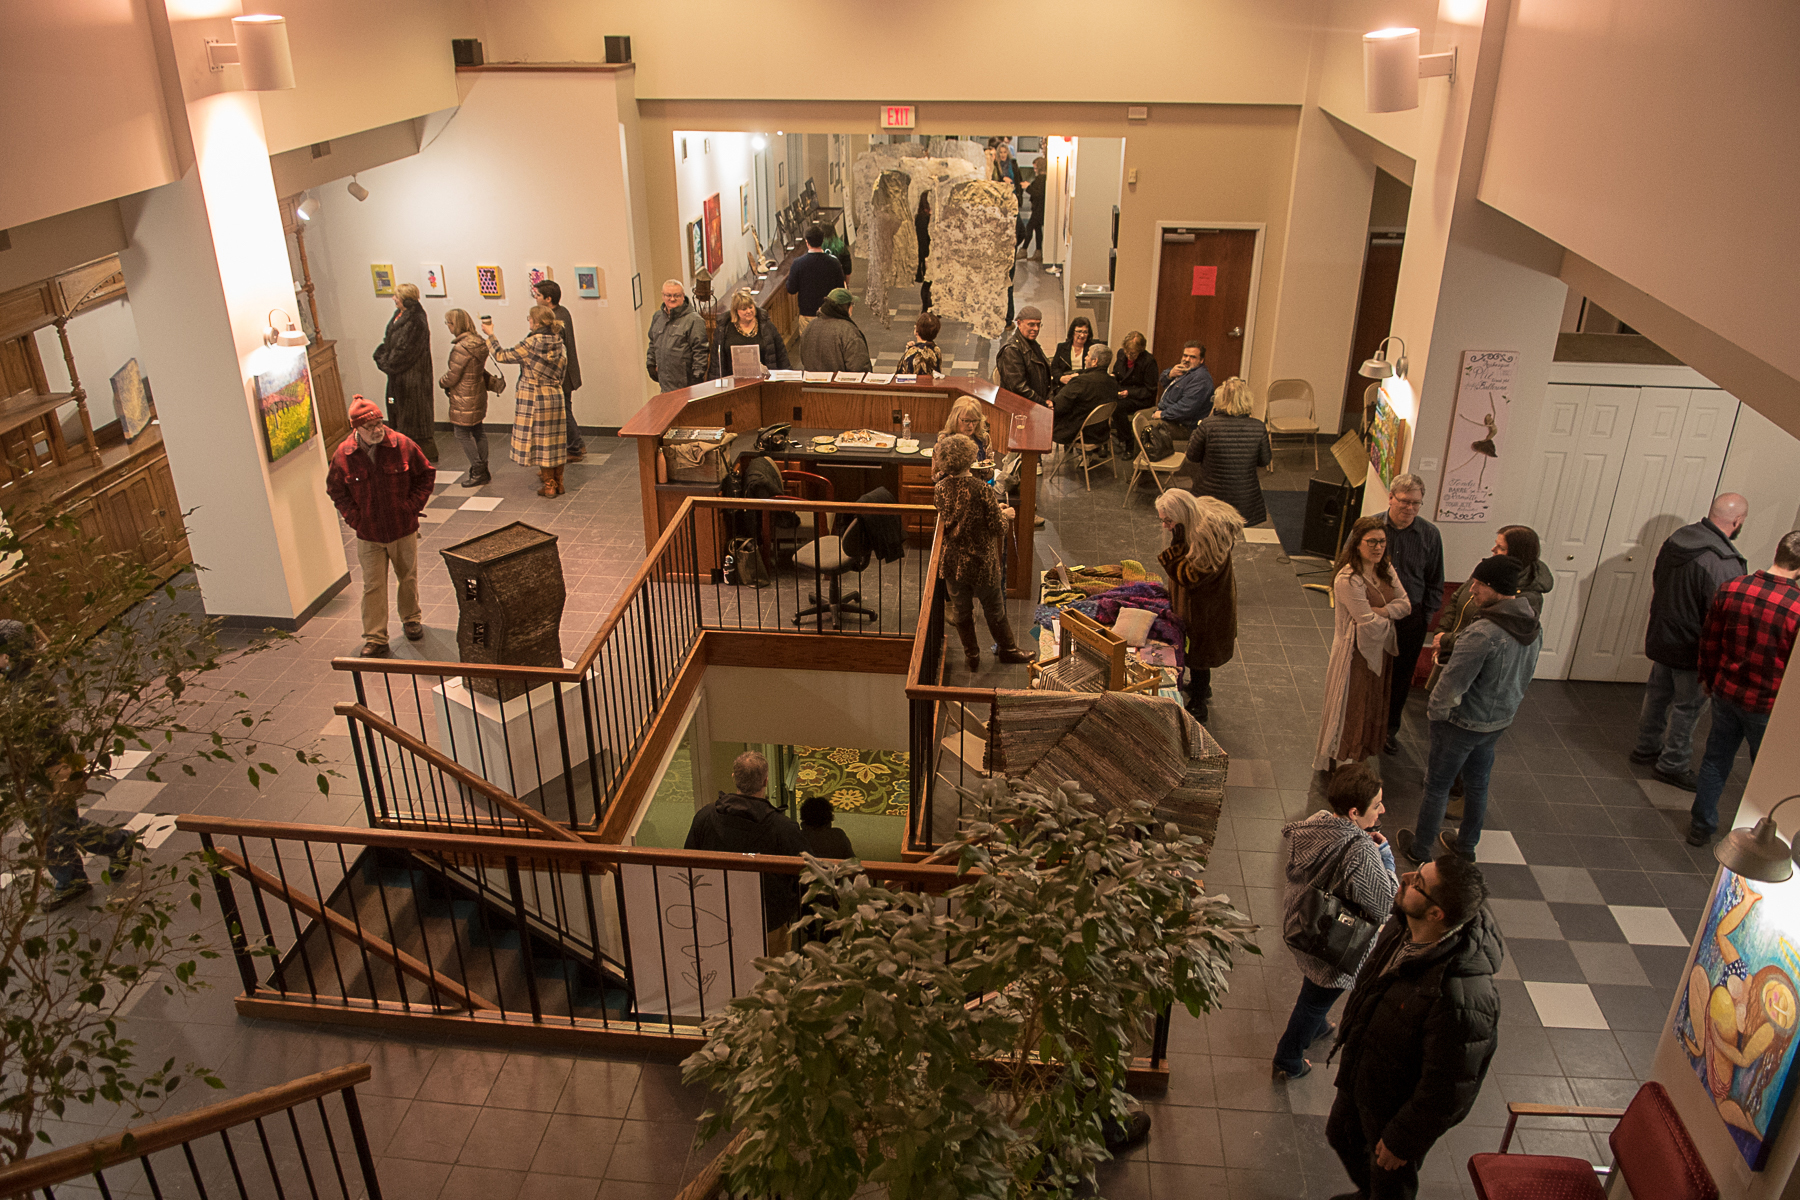 This is a view of the gallery space, Look at AWE Gallery at the Palace Center for current works on view. Look at the community page for past shows.